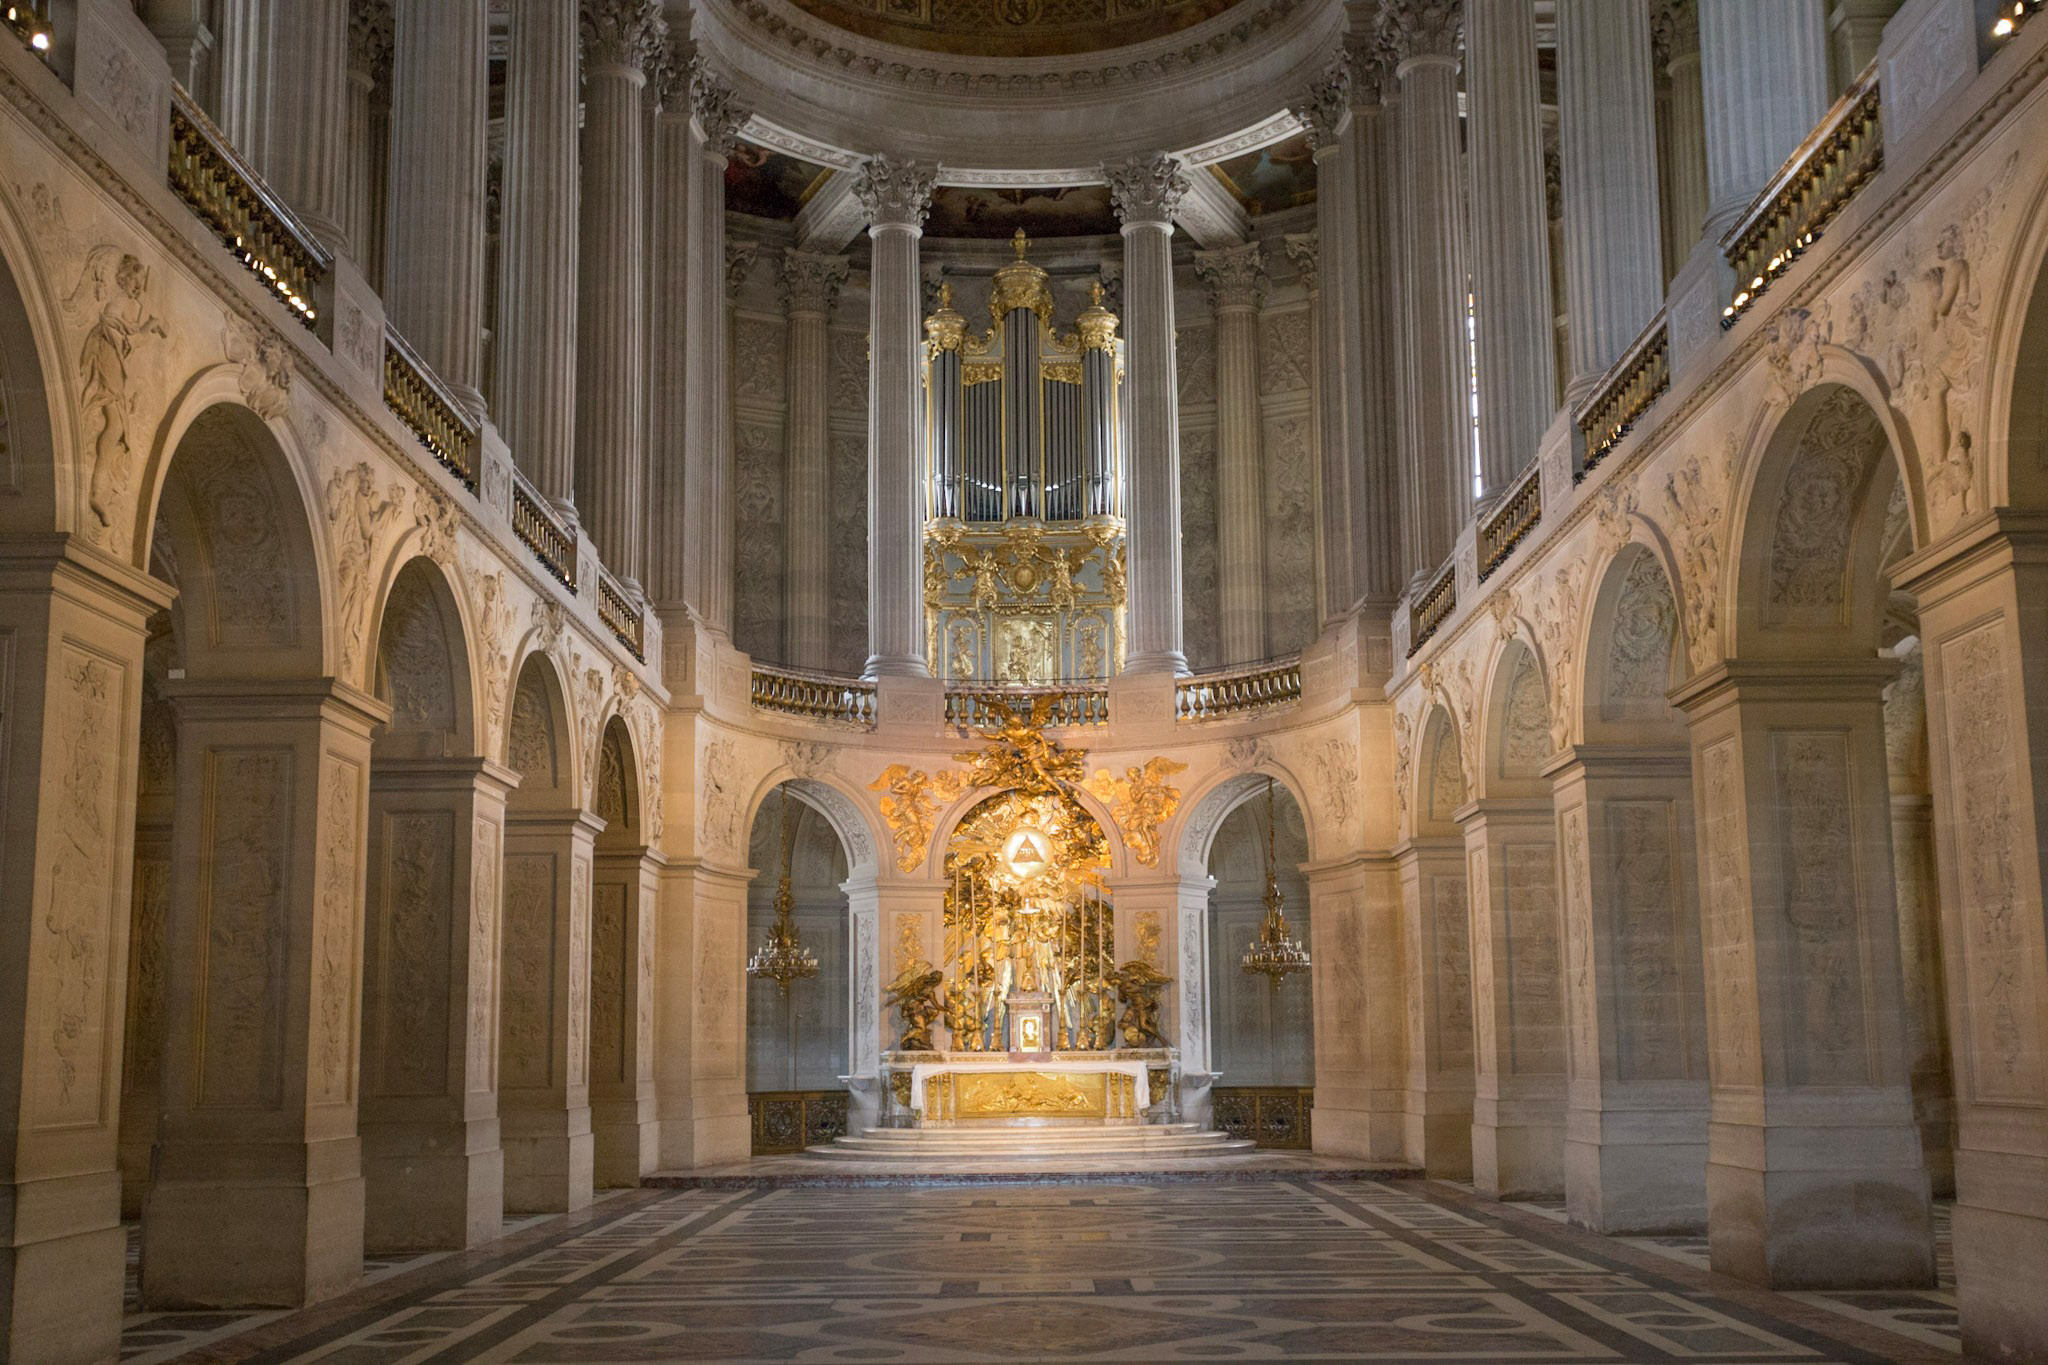 One of the few times you will get to see a church empty of tourists. The private chapel of Versailles.